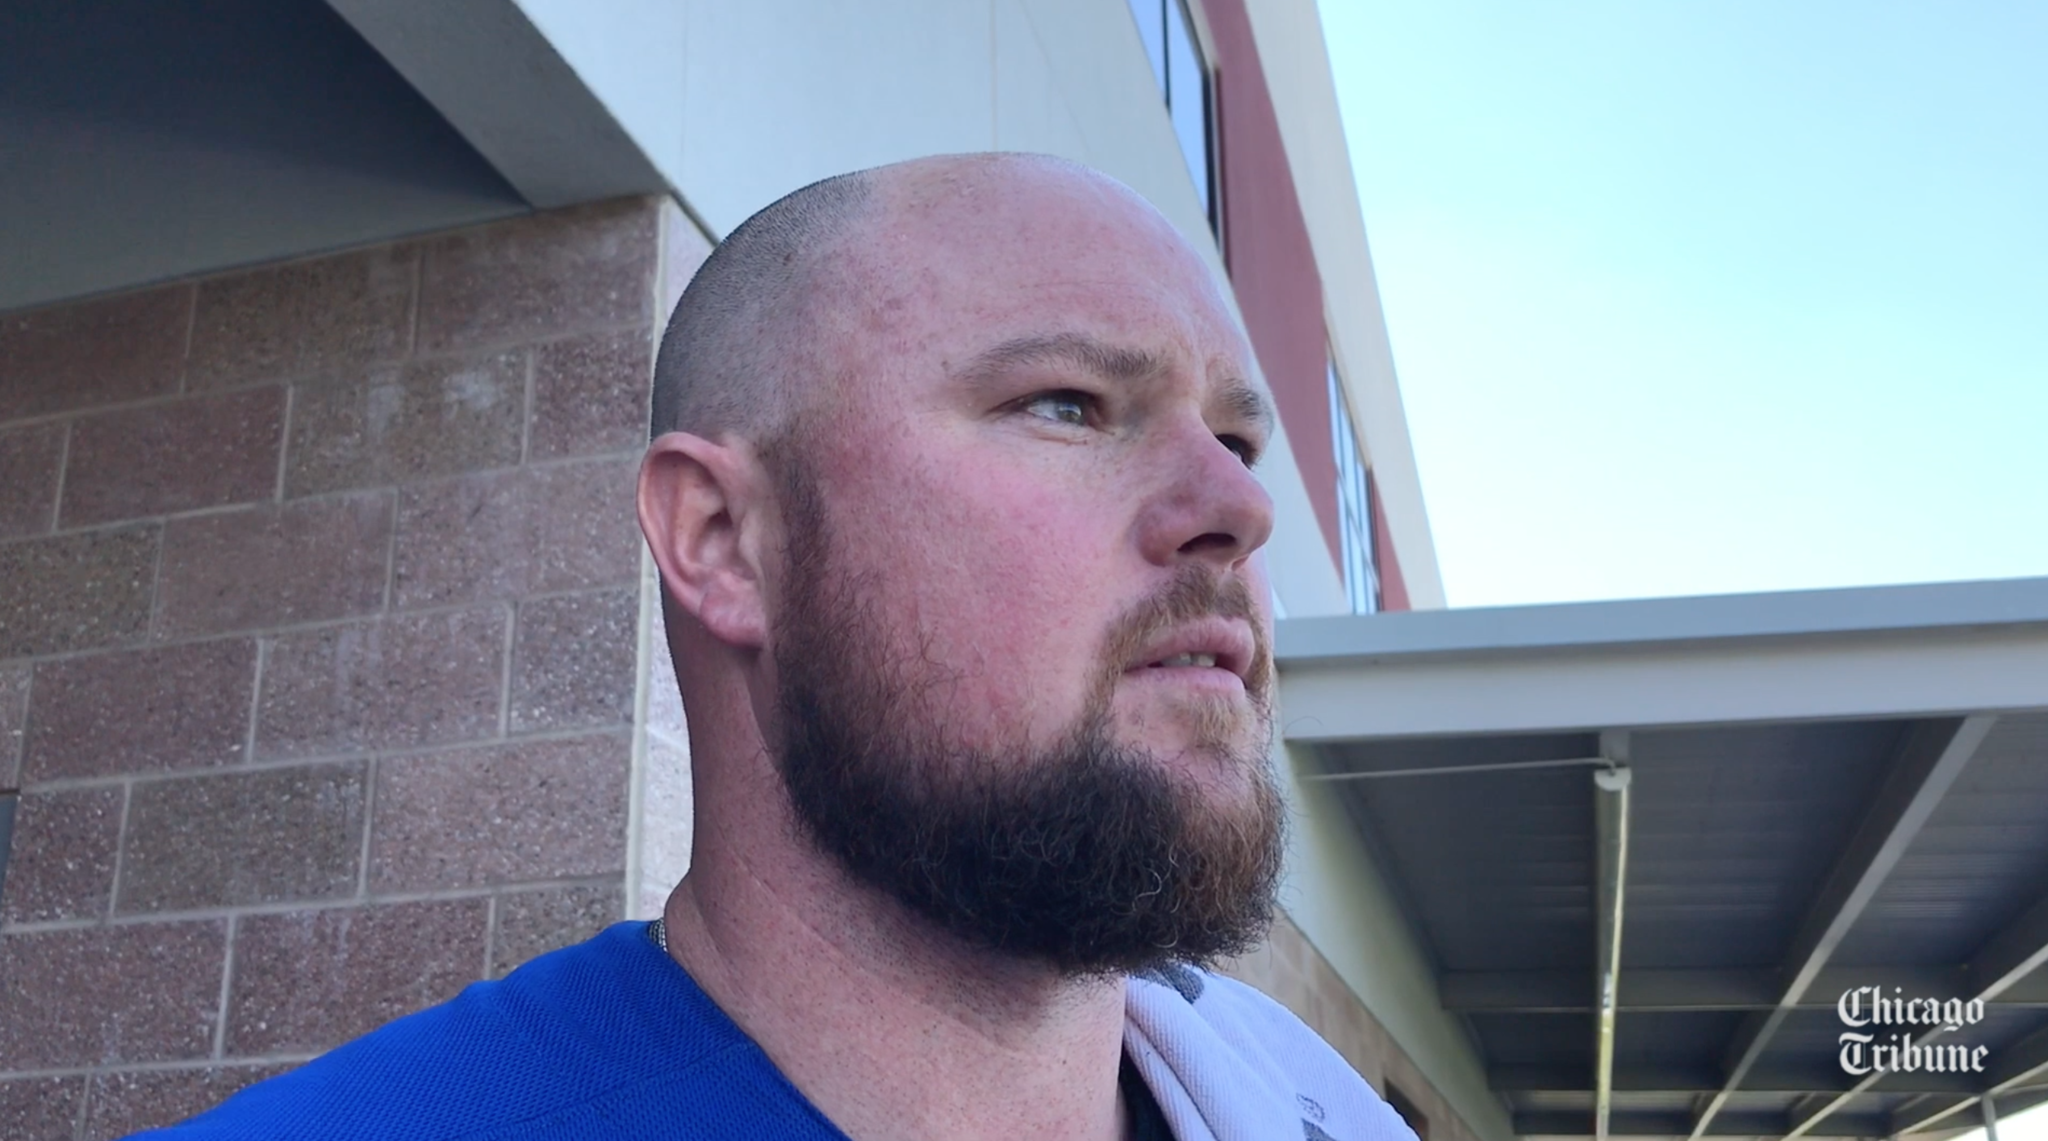 4 takeaways from Cubs spring training, including Jon Lester building up his pitch count and a test for Pedro Strop's hamstring